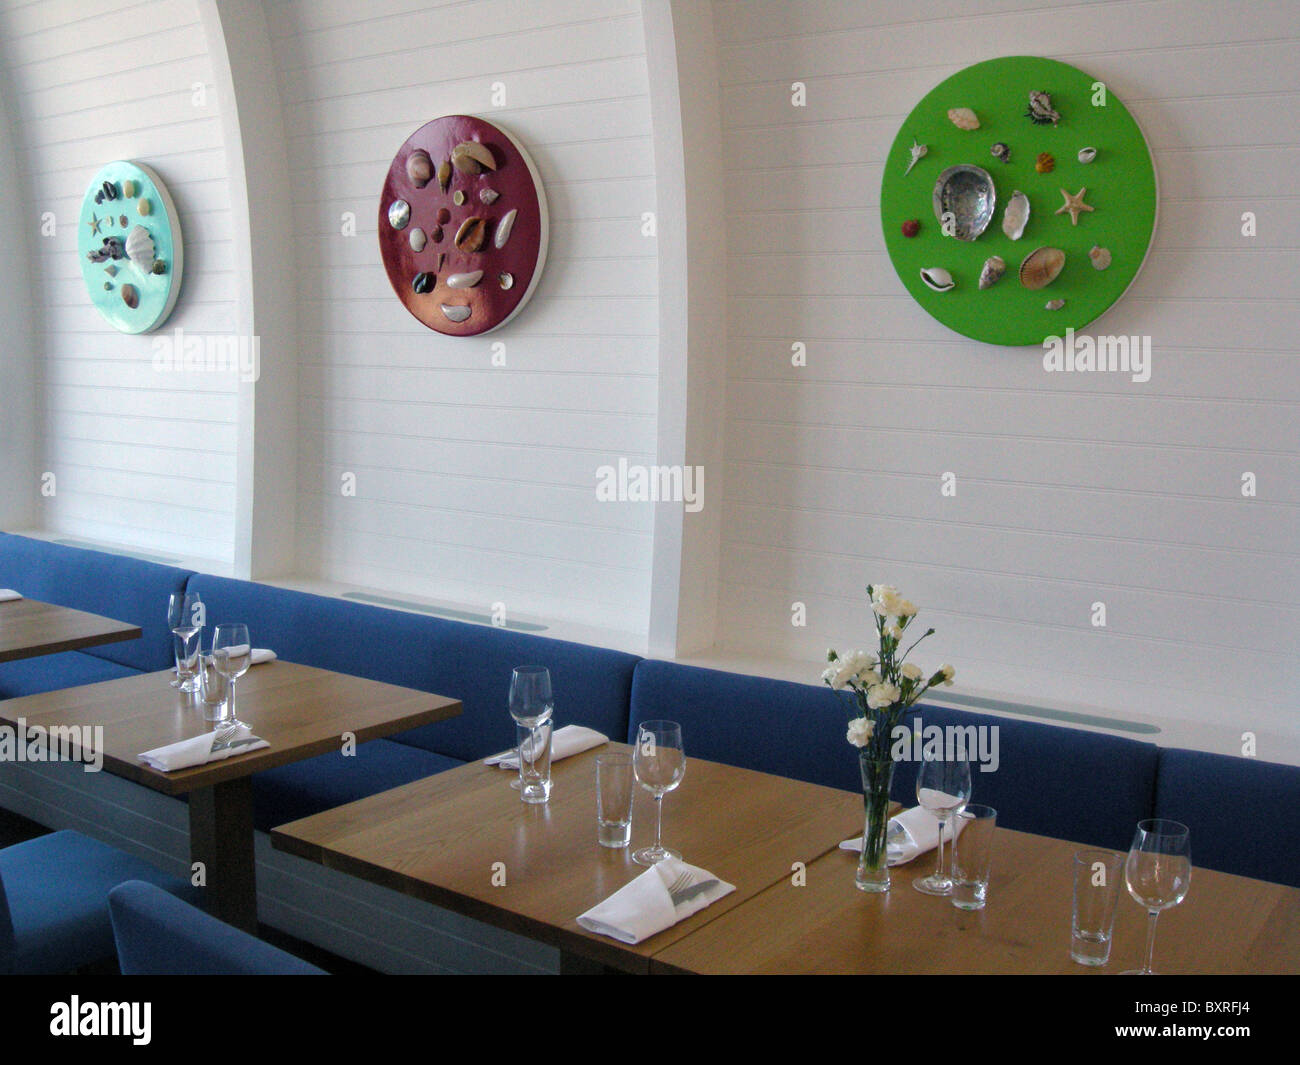 UK. THE QUAY RESTAURANT AND CAFE BAR AT ILFRACOMBE, DEVON. IS OWNED BY ARTIST DAMIAN HIRST WHOSE ART IS ON DISPLAY - Stock Image